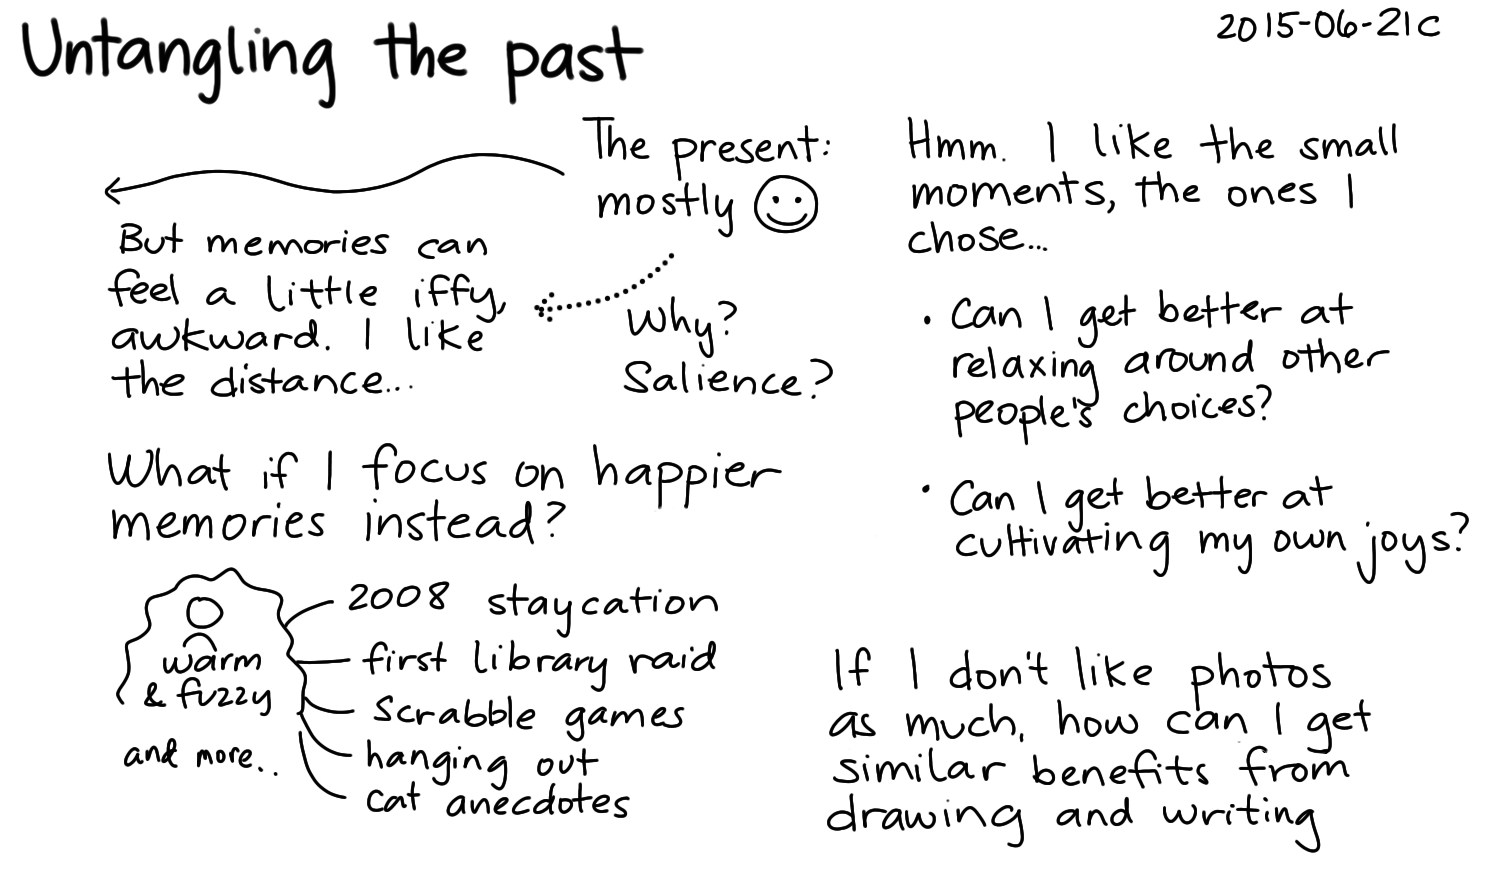 2015-06-21c Untangling the past -- index card #reflection #past.png